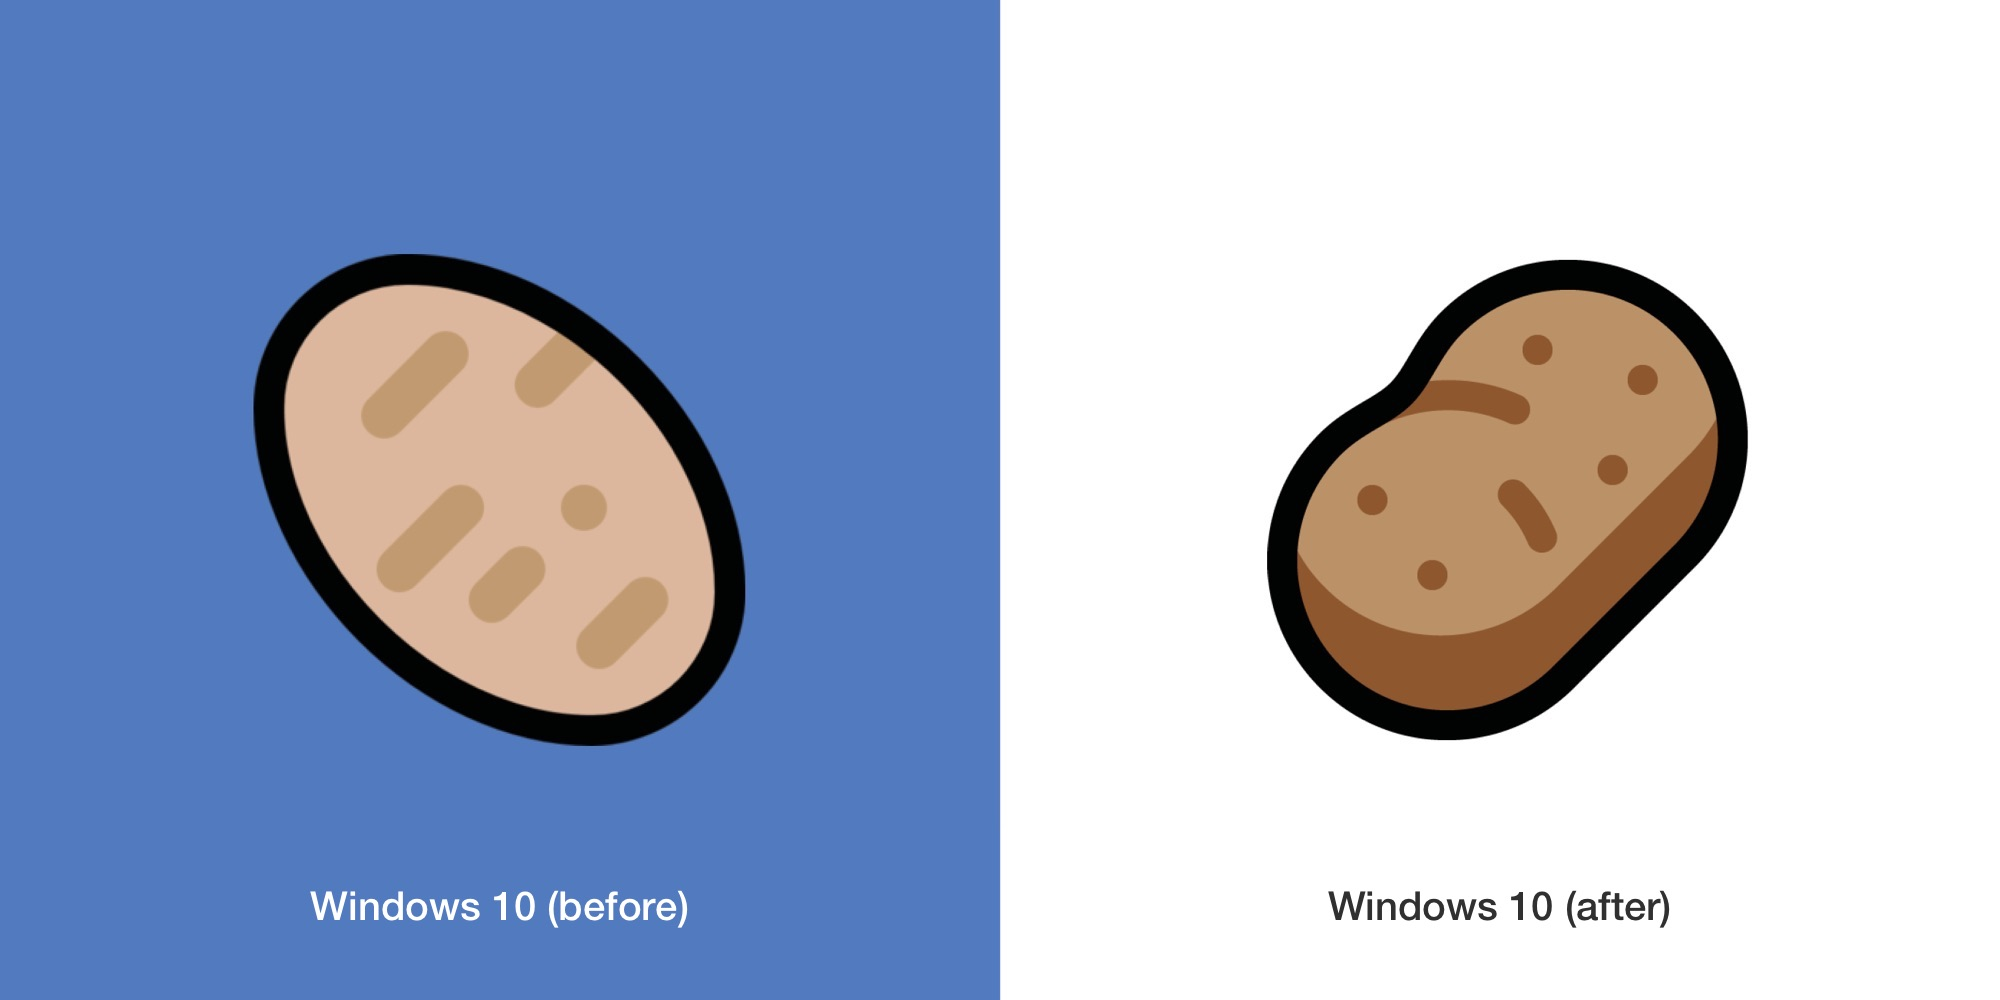 potato-emojipedia-windows-10-april-2018-emojipedia